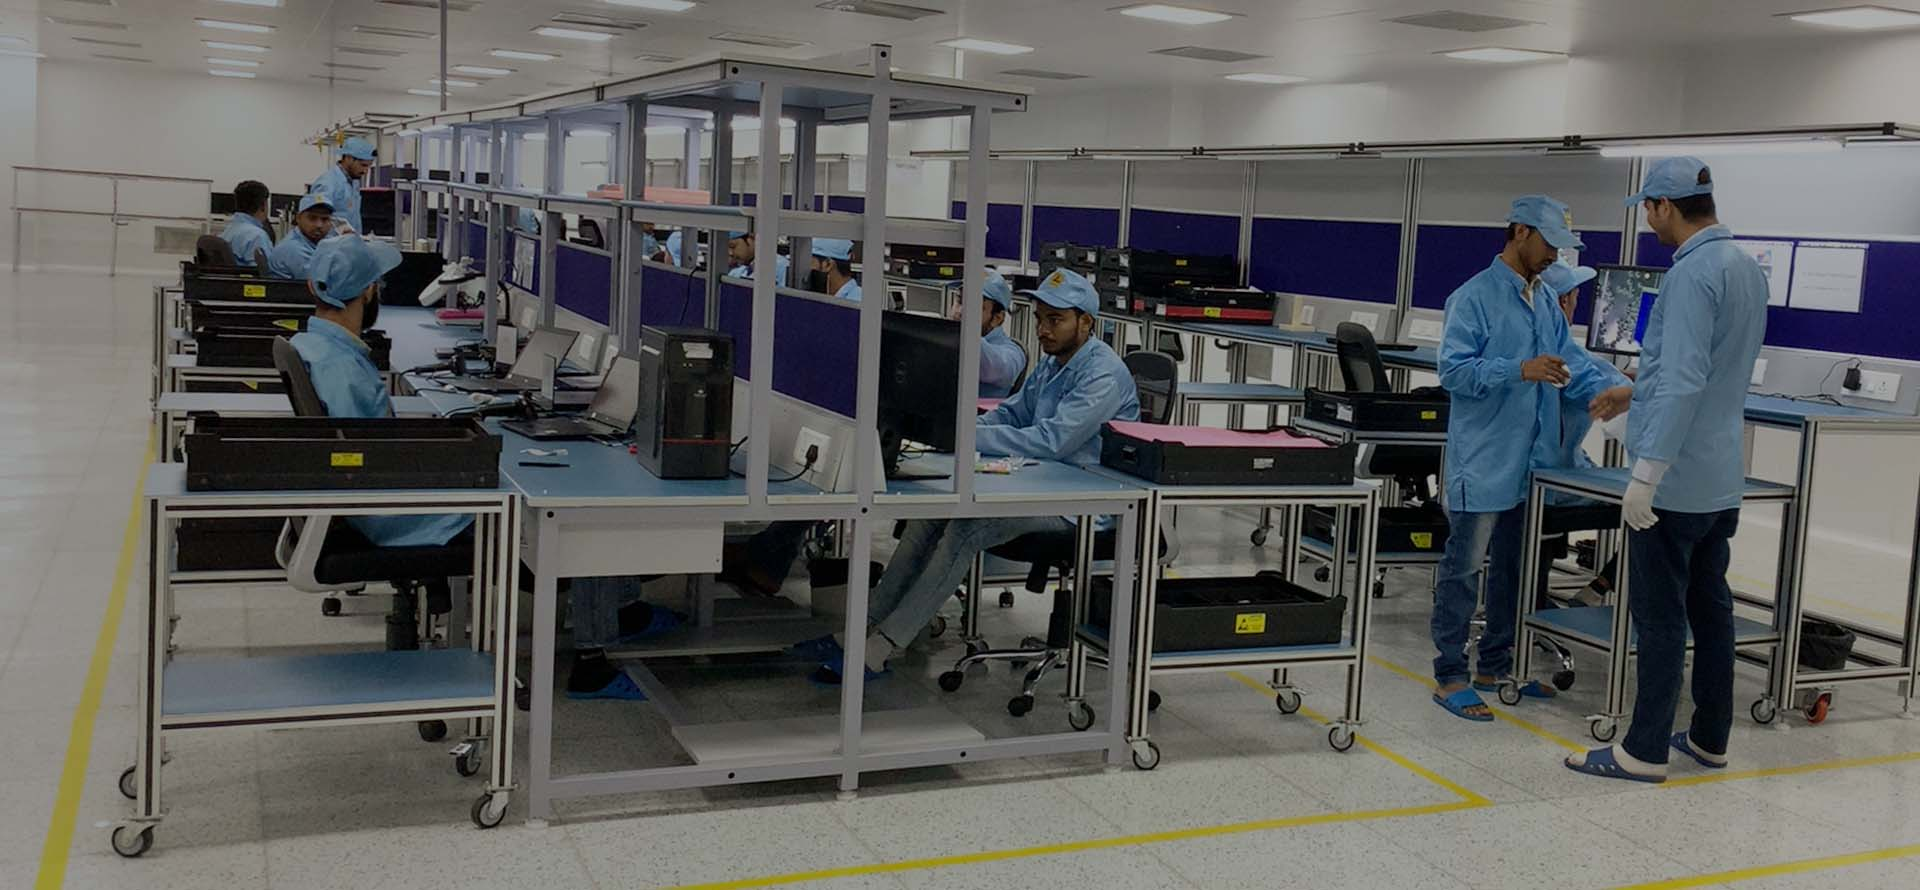 Product Assembly, Fastest growing ODM based out of India focusing on delivering quality products for the connected world